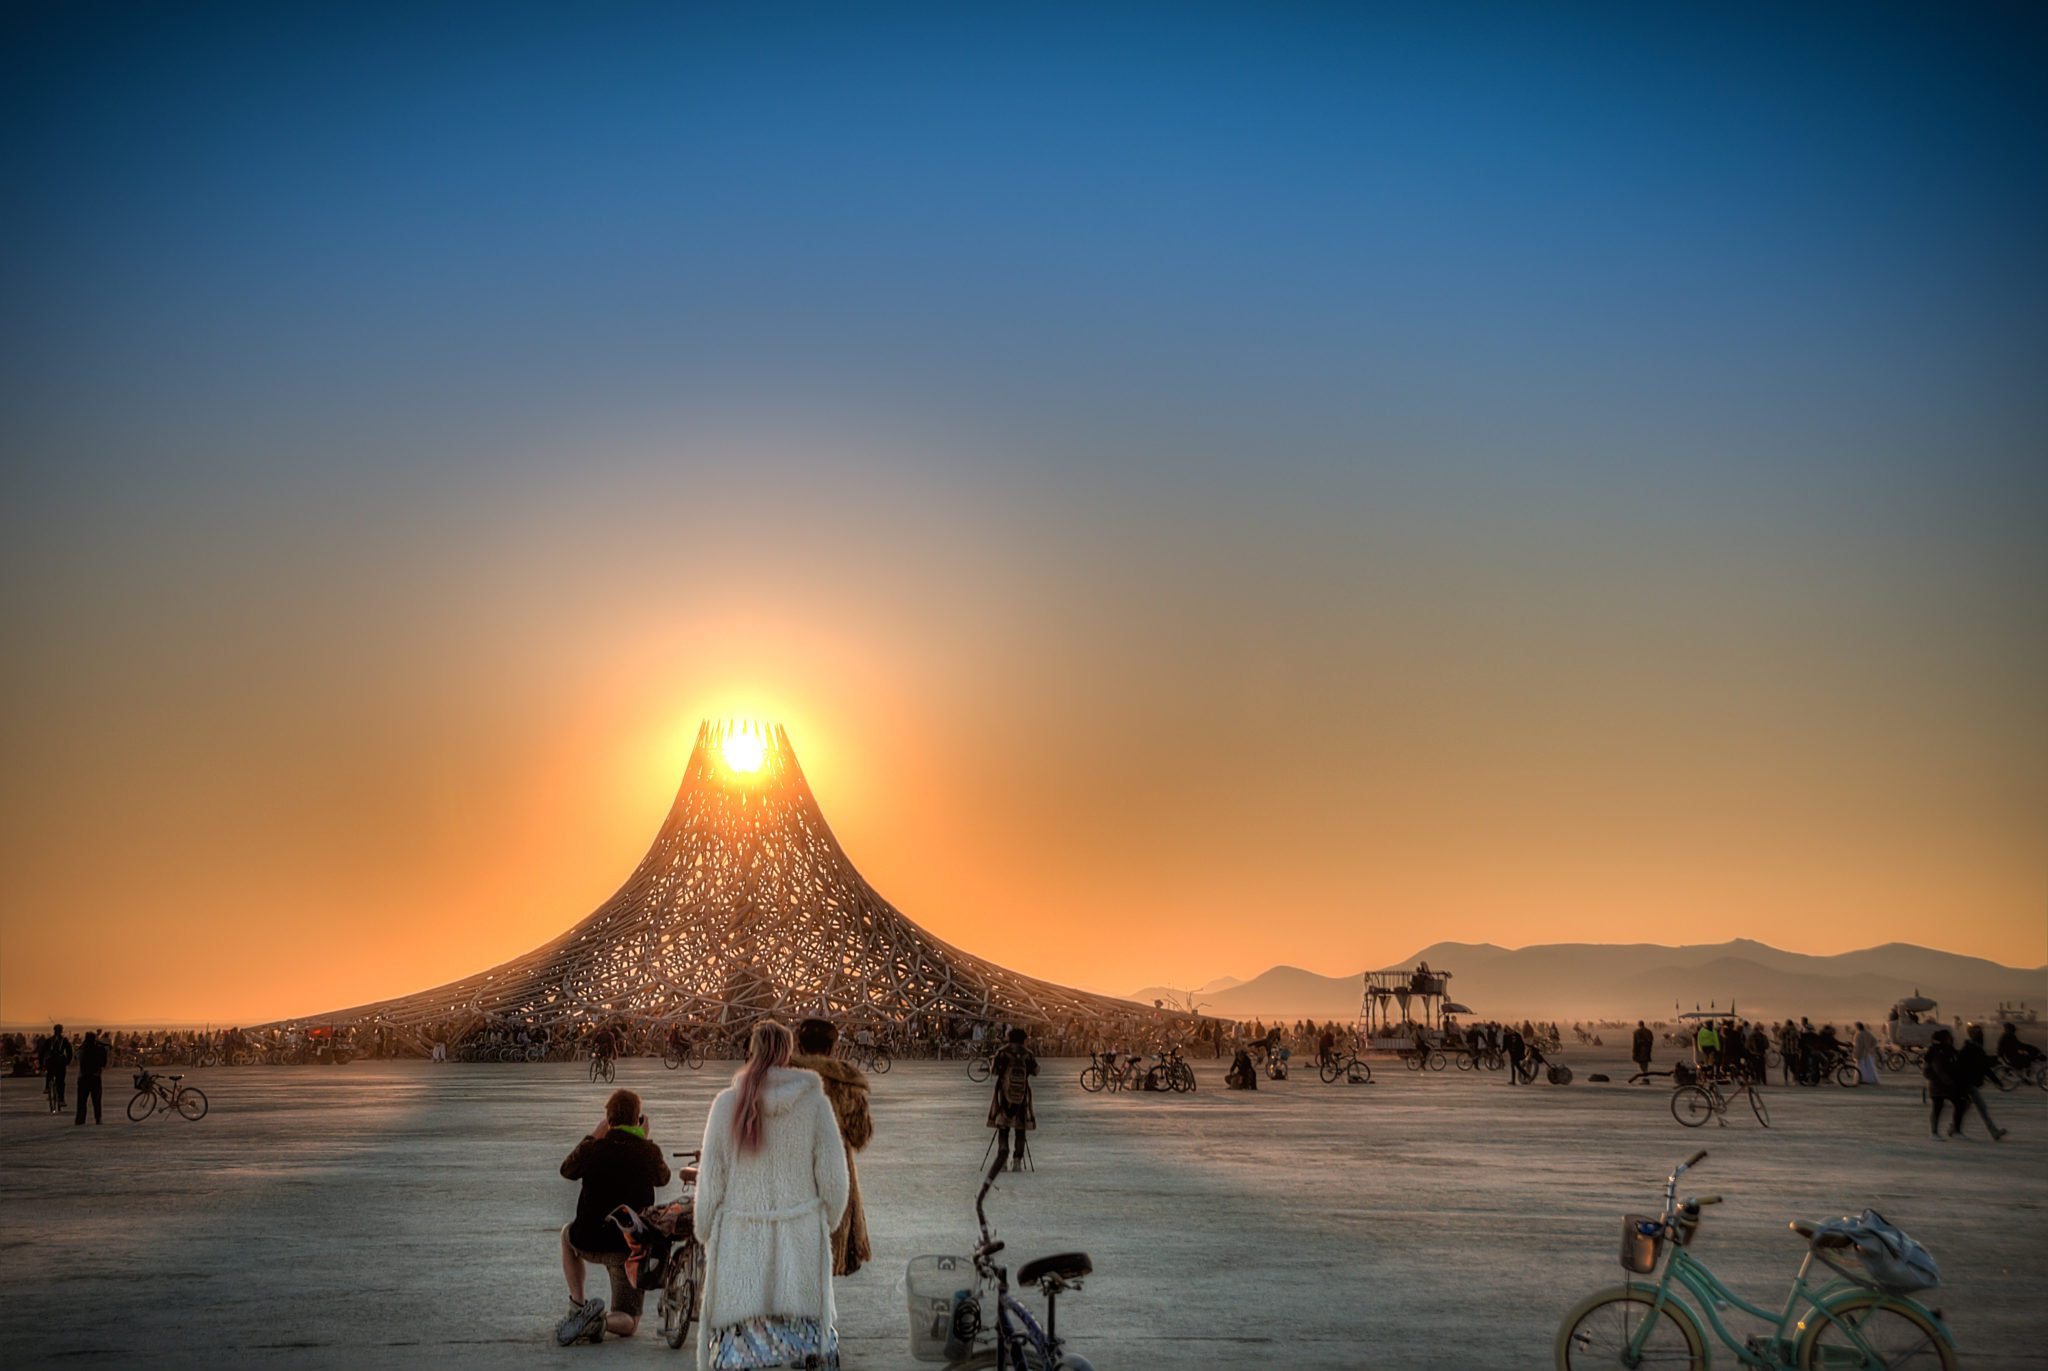 Sunset @ Temple Galaxia - Photo by Evan Eggers